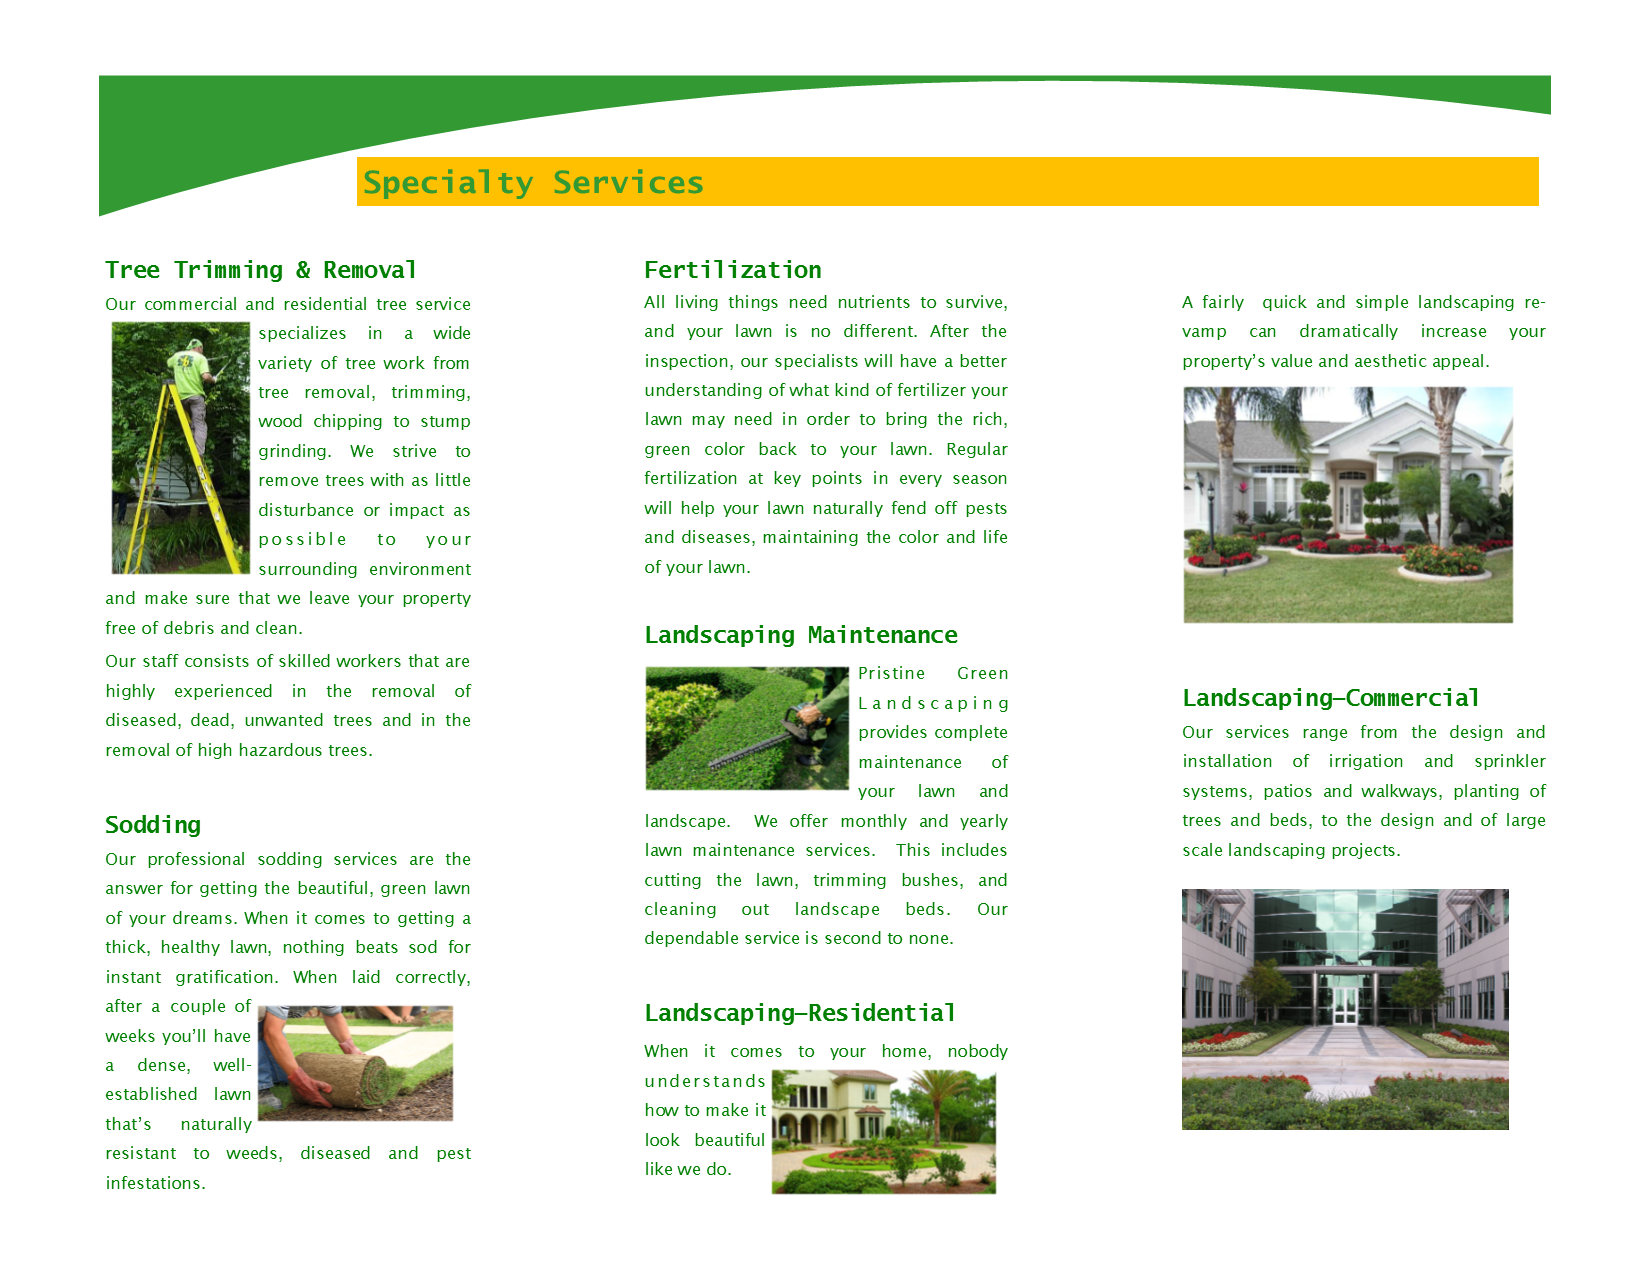 Trifold Brochure Page 2 of 2